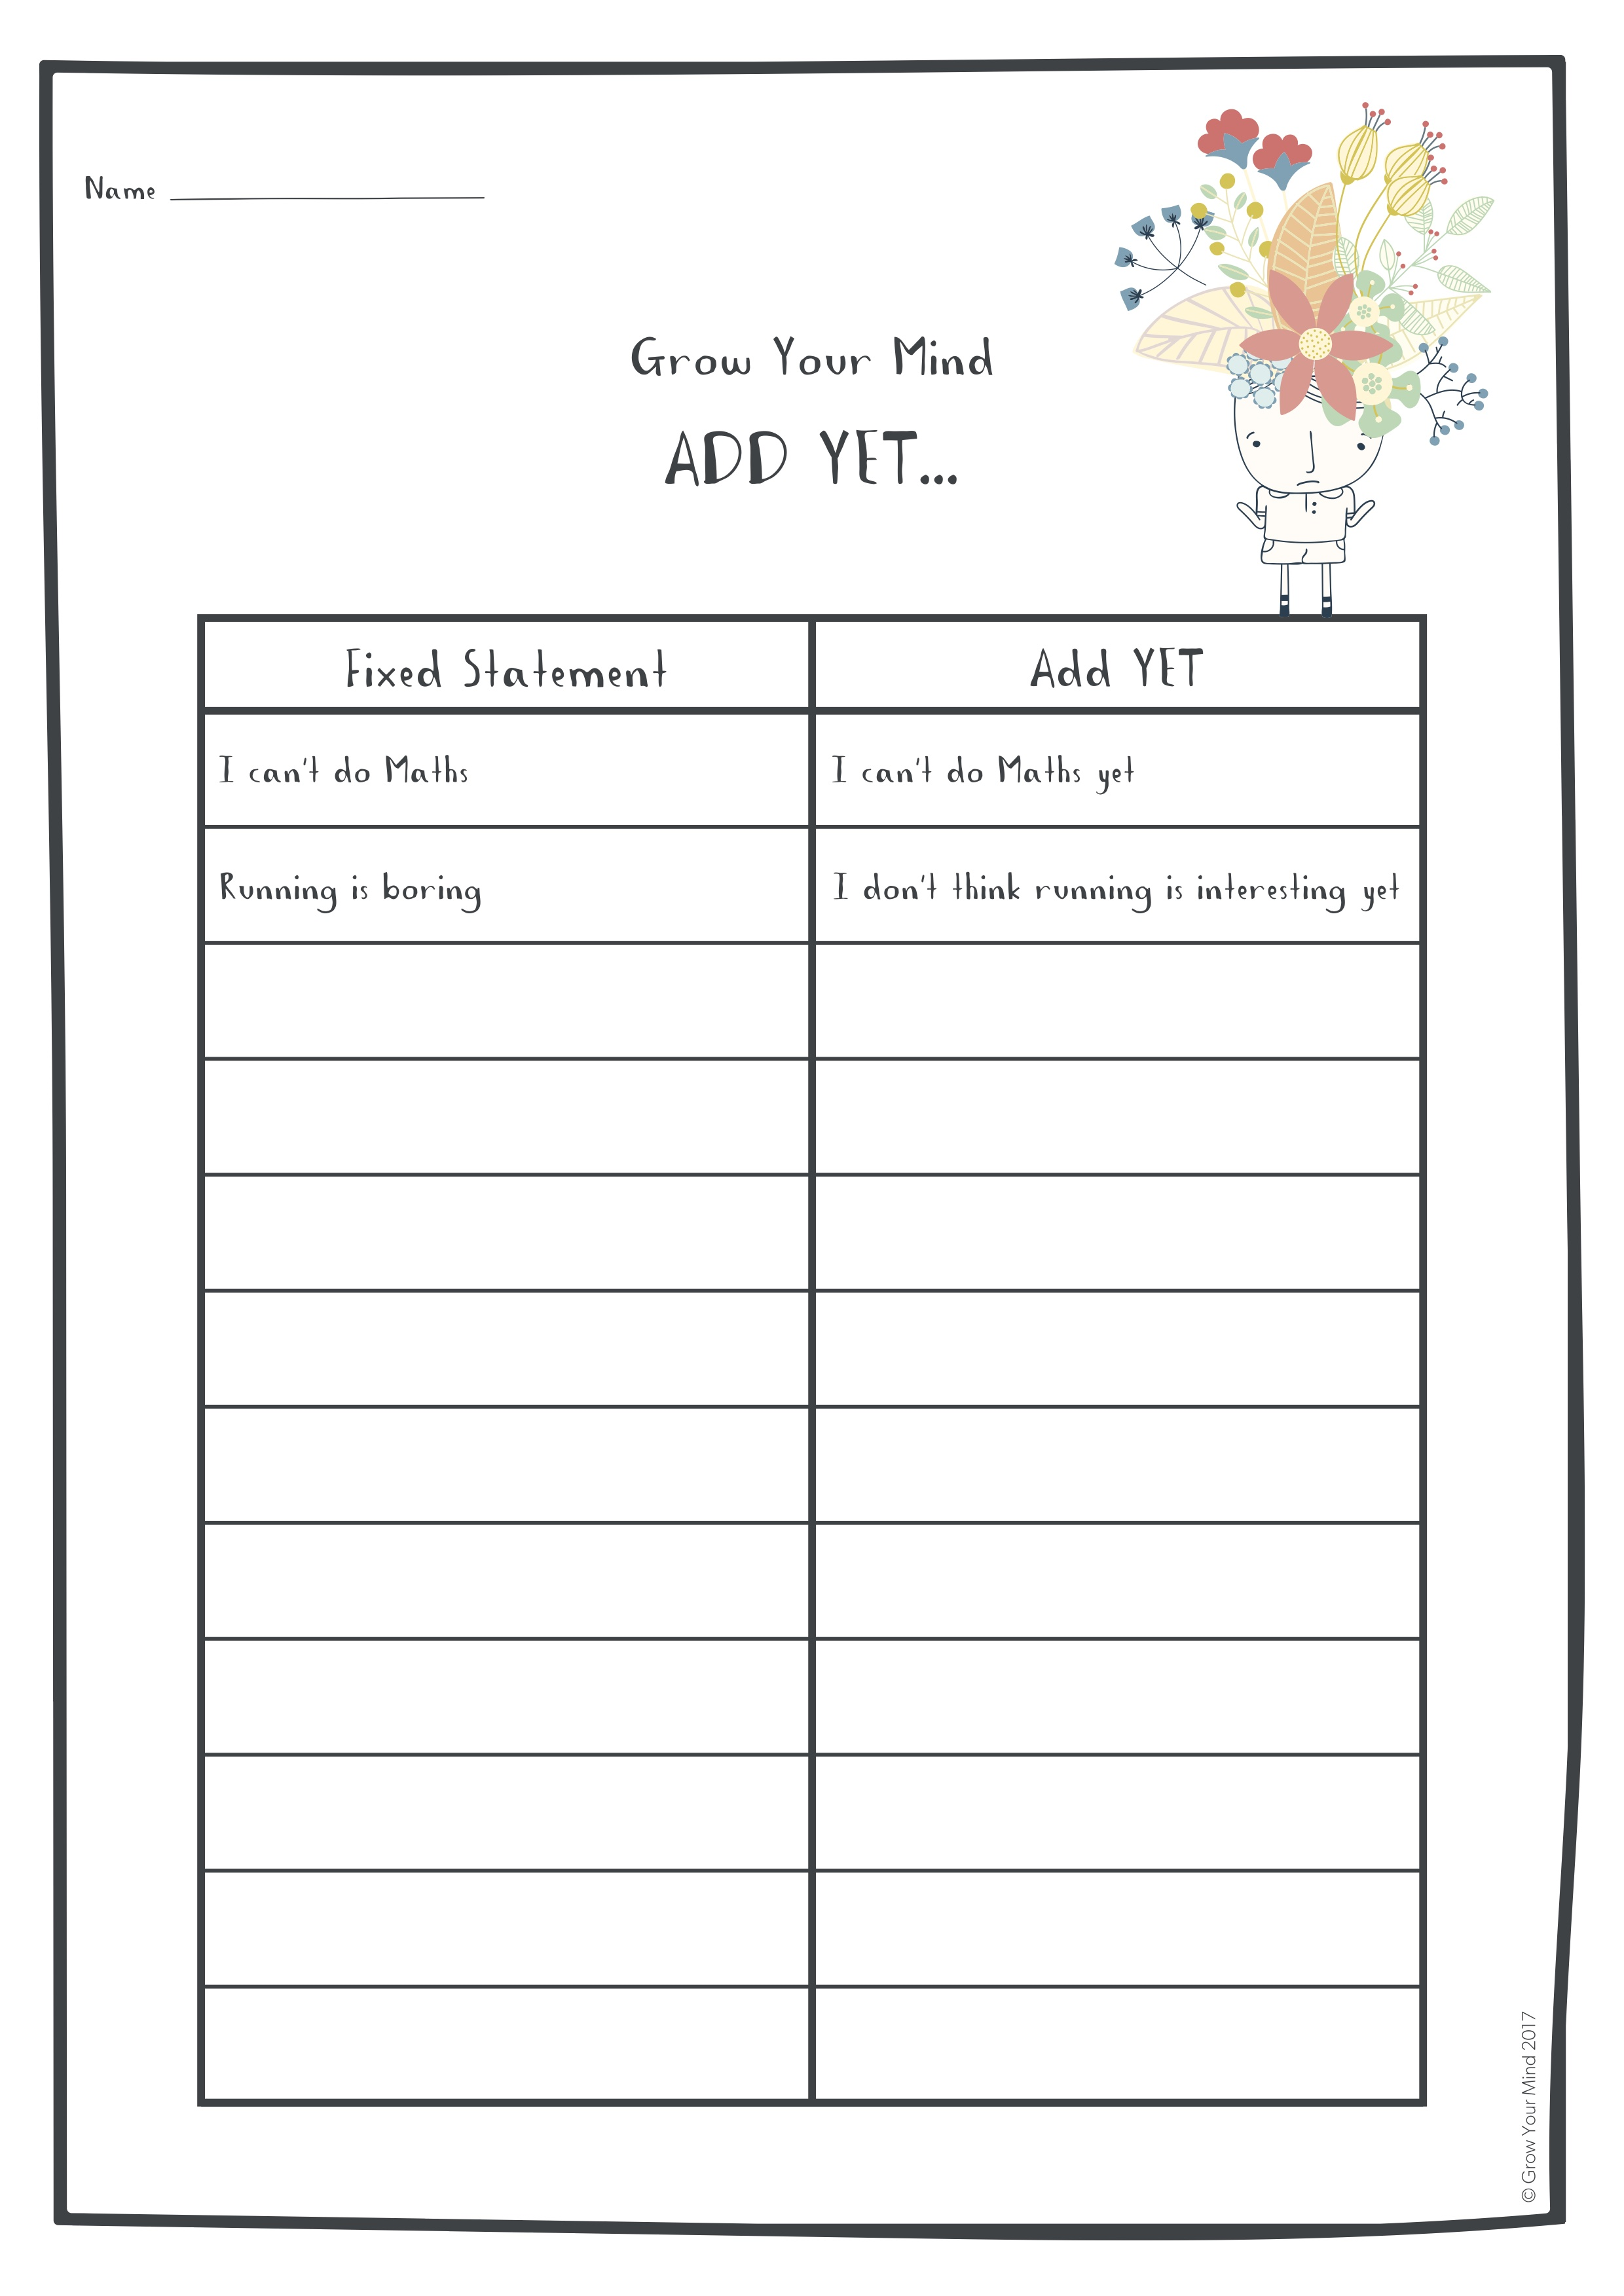 Add Yet - For: Year 3-6Theme: Growth mindsetTo go with: Introductory lessons or use in isolation